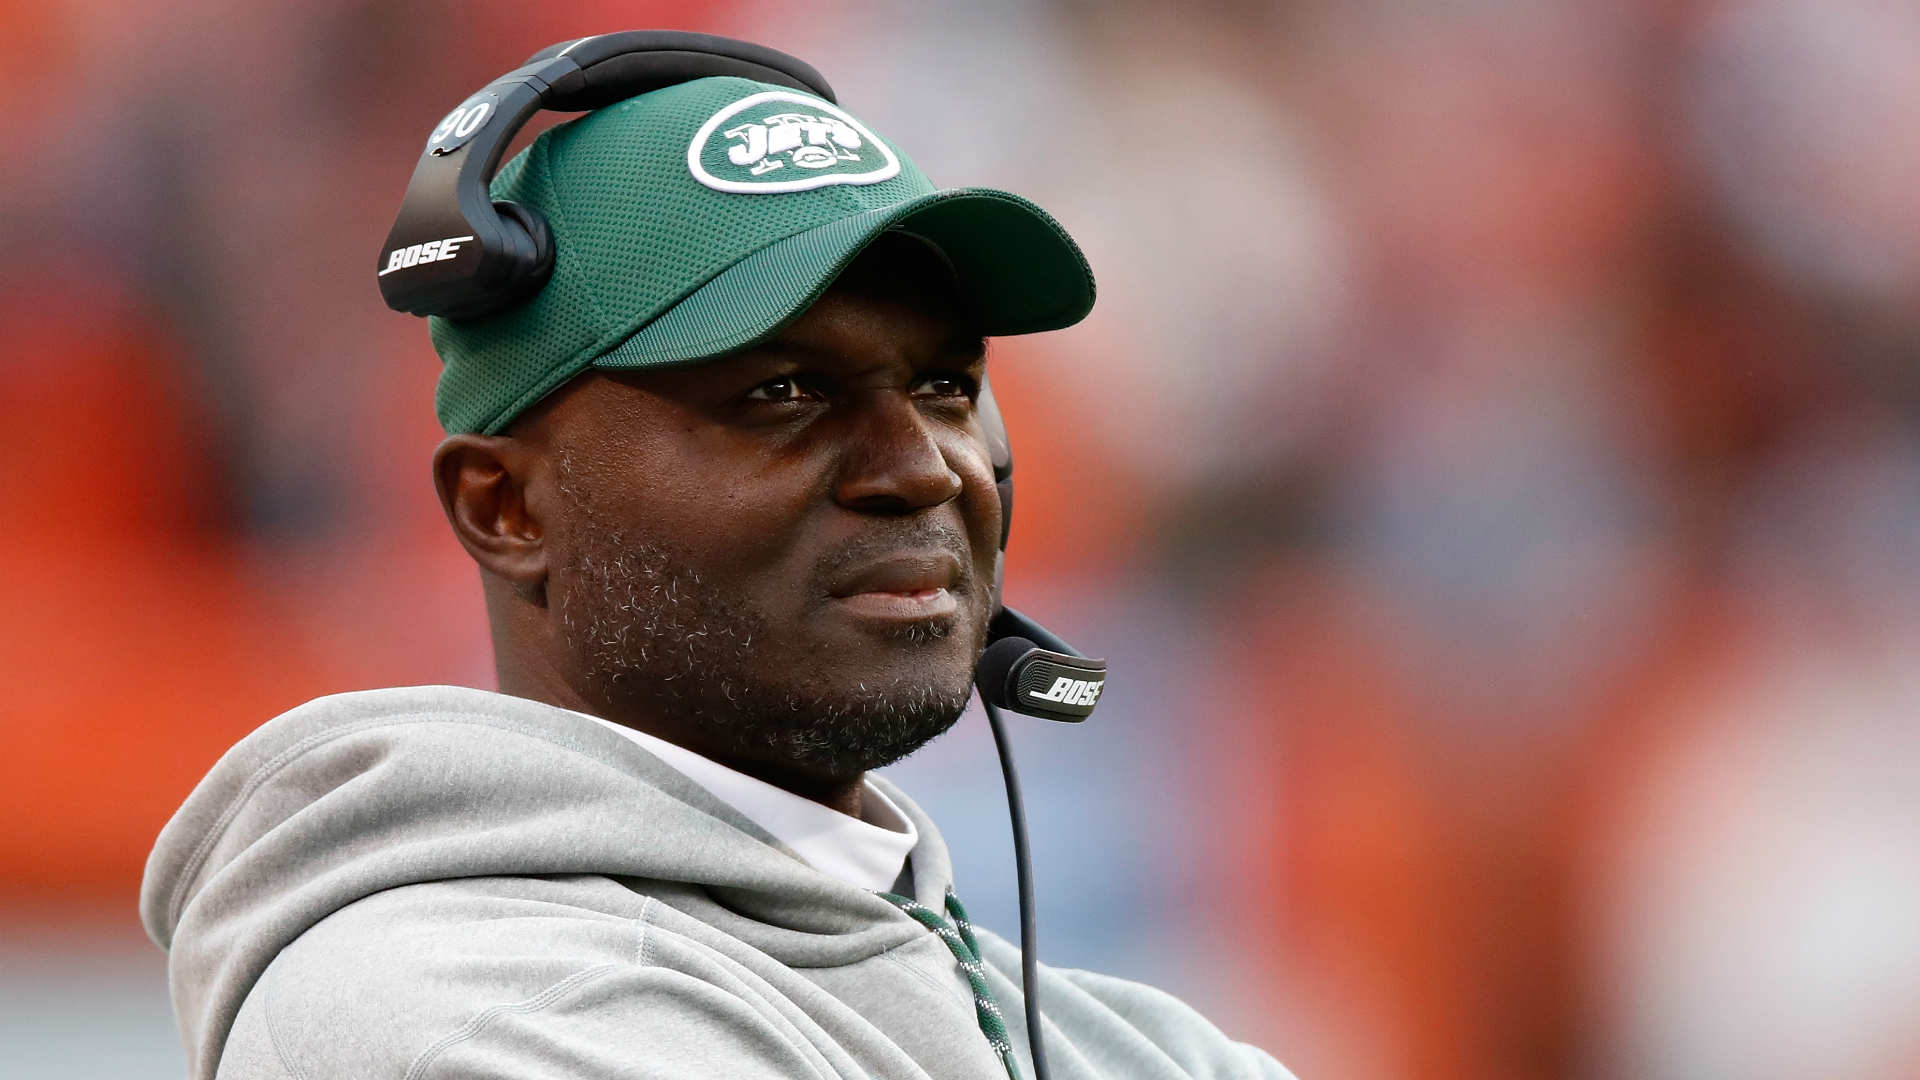 Jets fire coach Bowles following 4-12 year